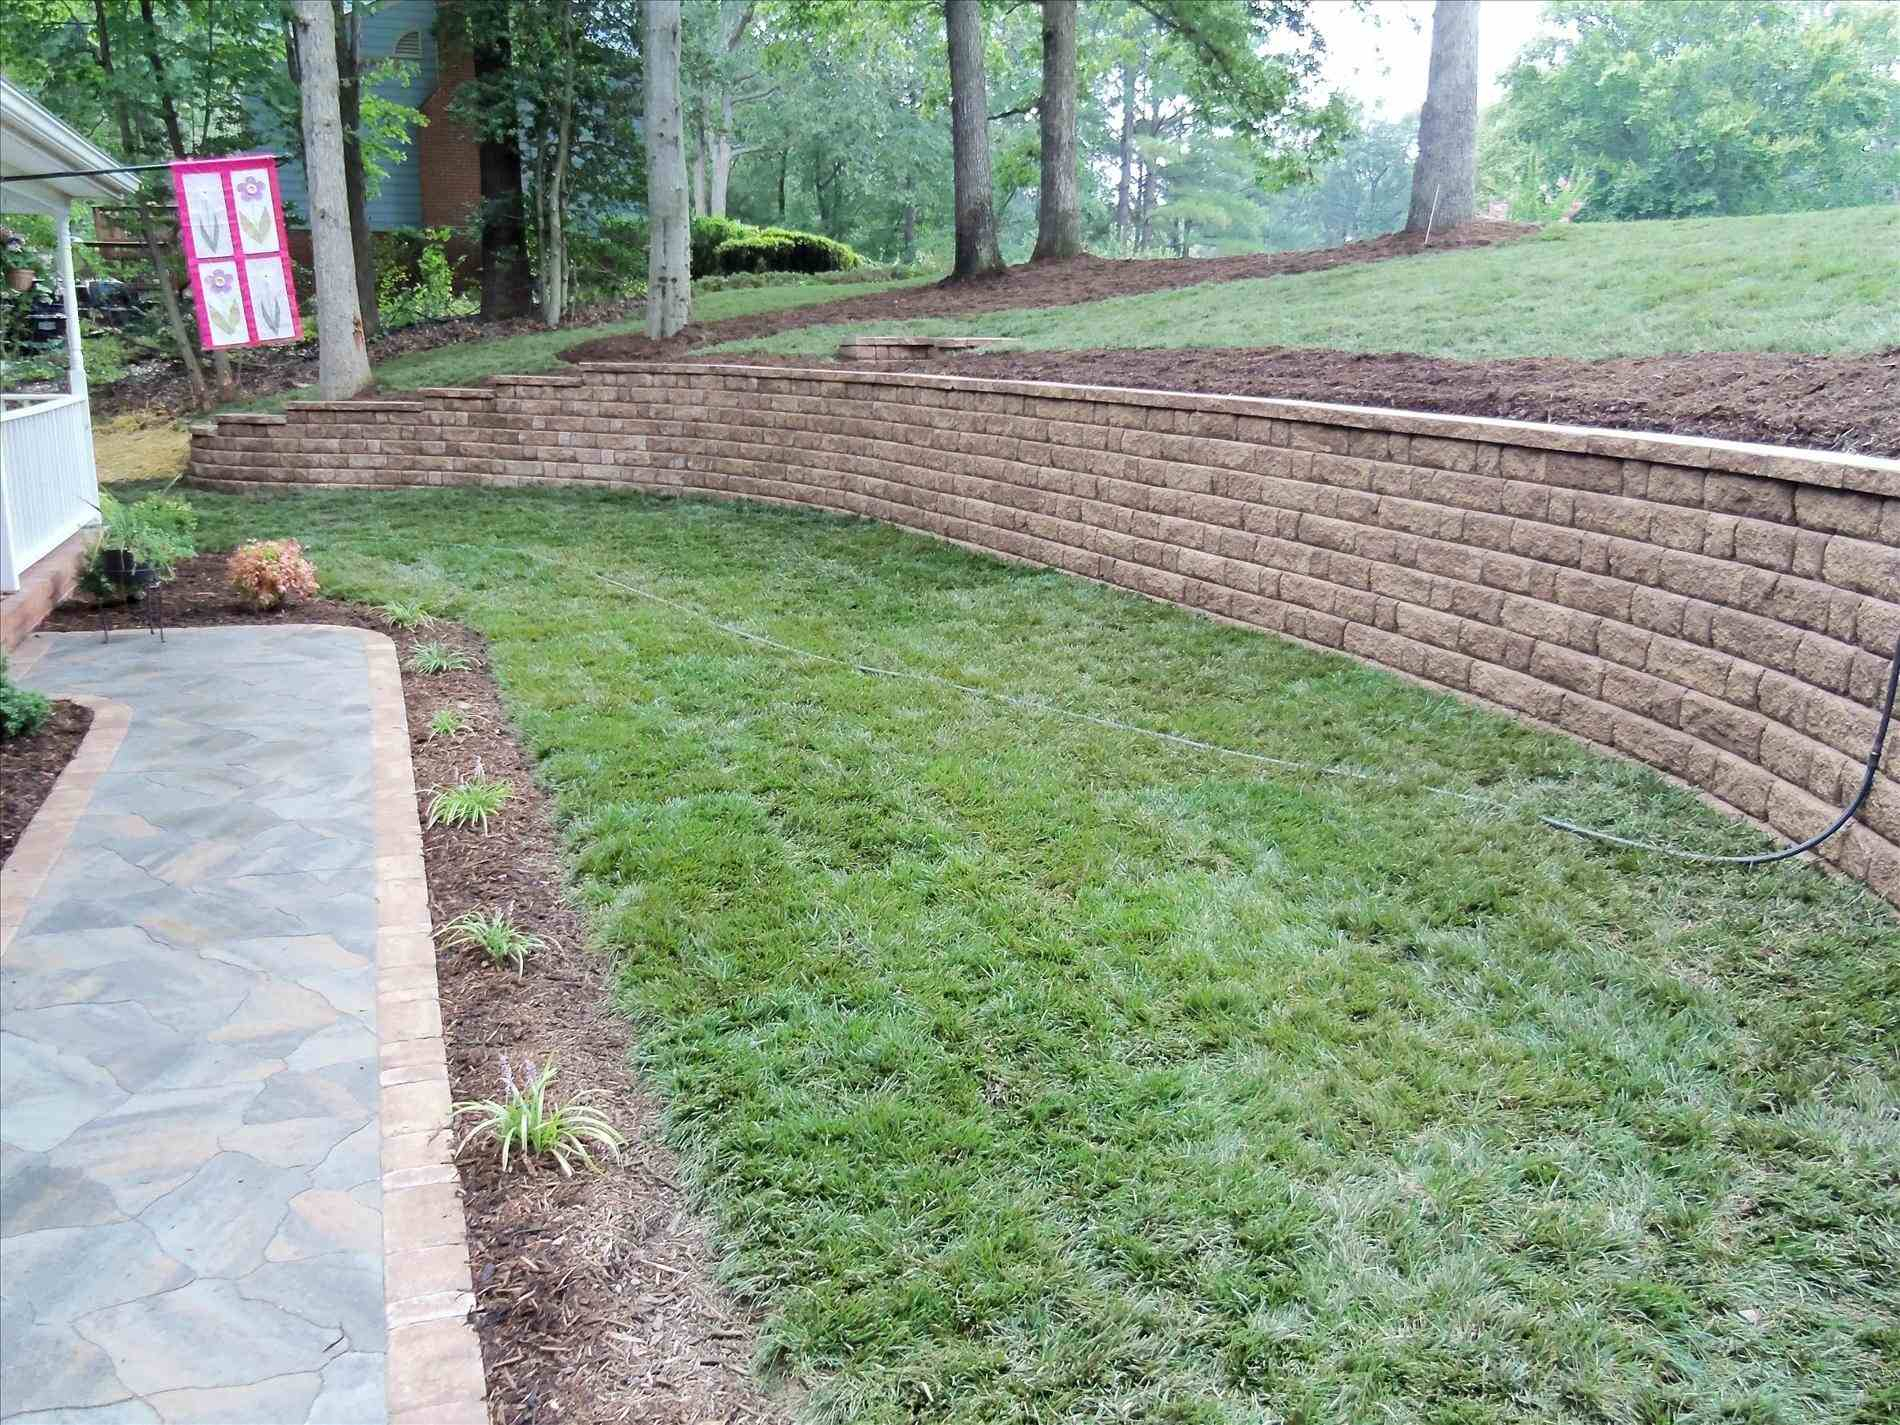 Minimalist Rhamysofficenet Patio Landscaping Ideas For with regard to 14 Genius Ways How to Craft Landscaping Ideas For Downward Sloping Backyard